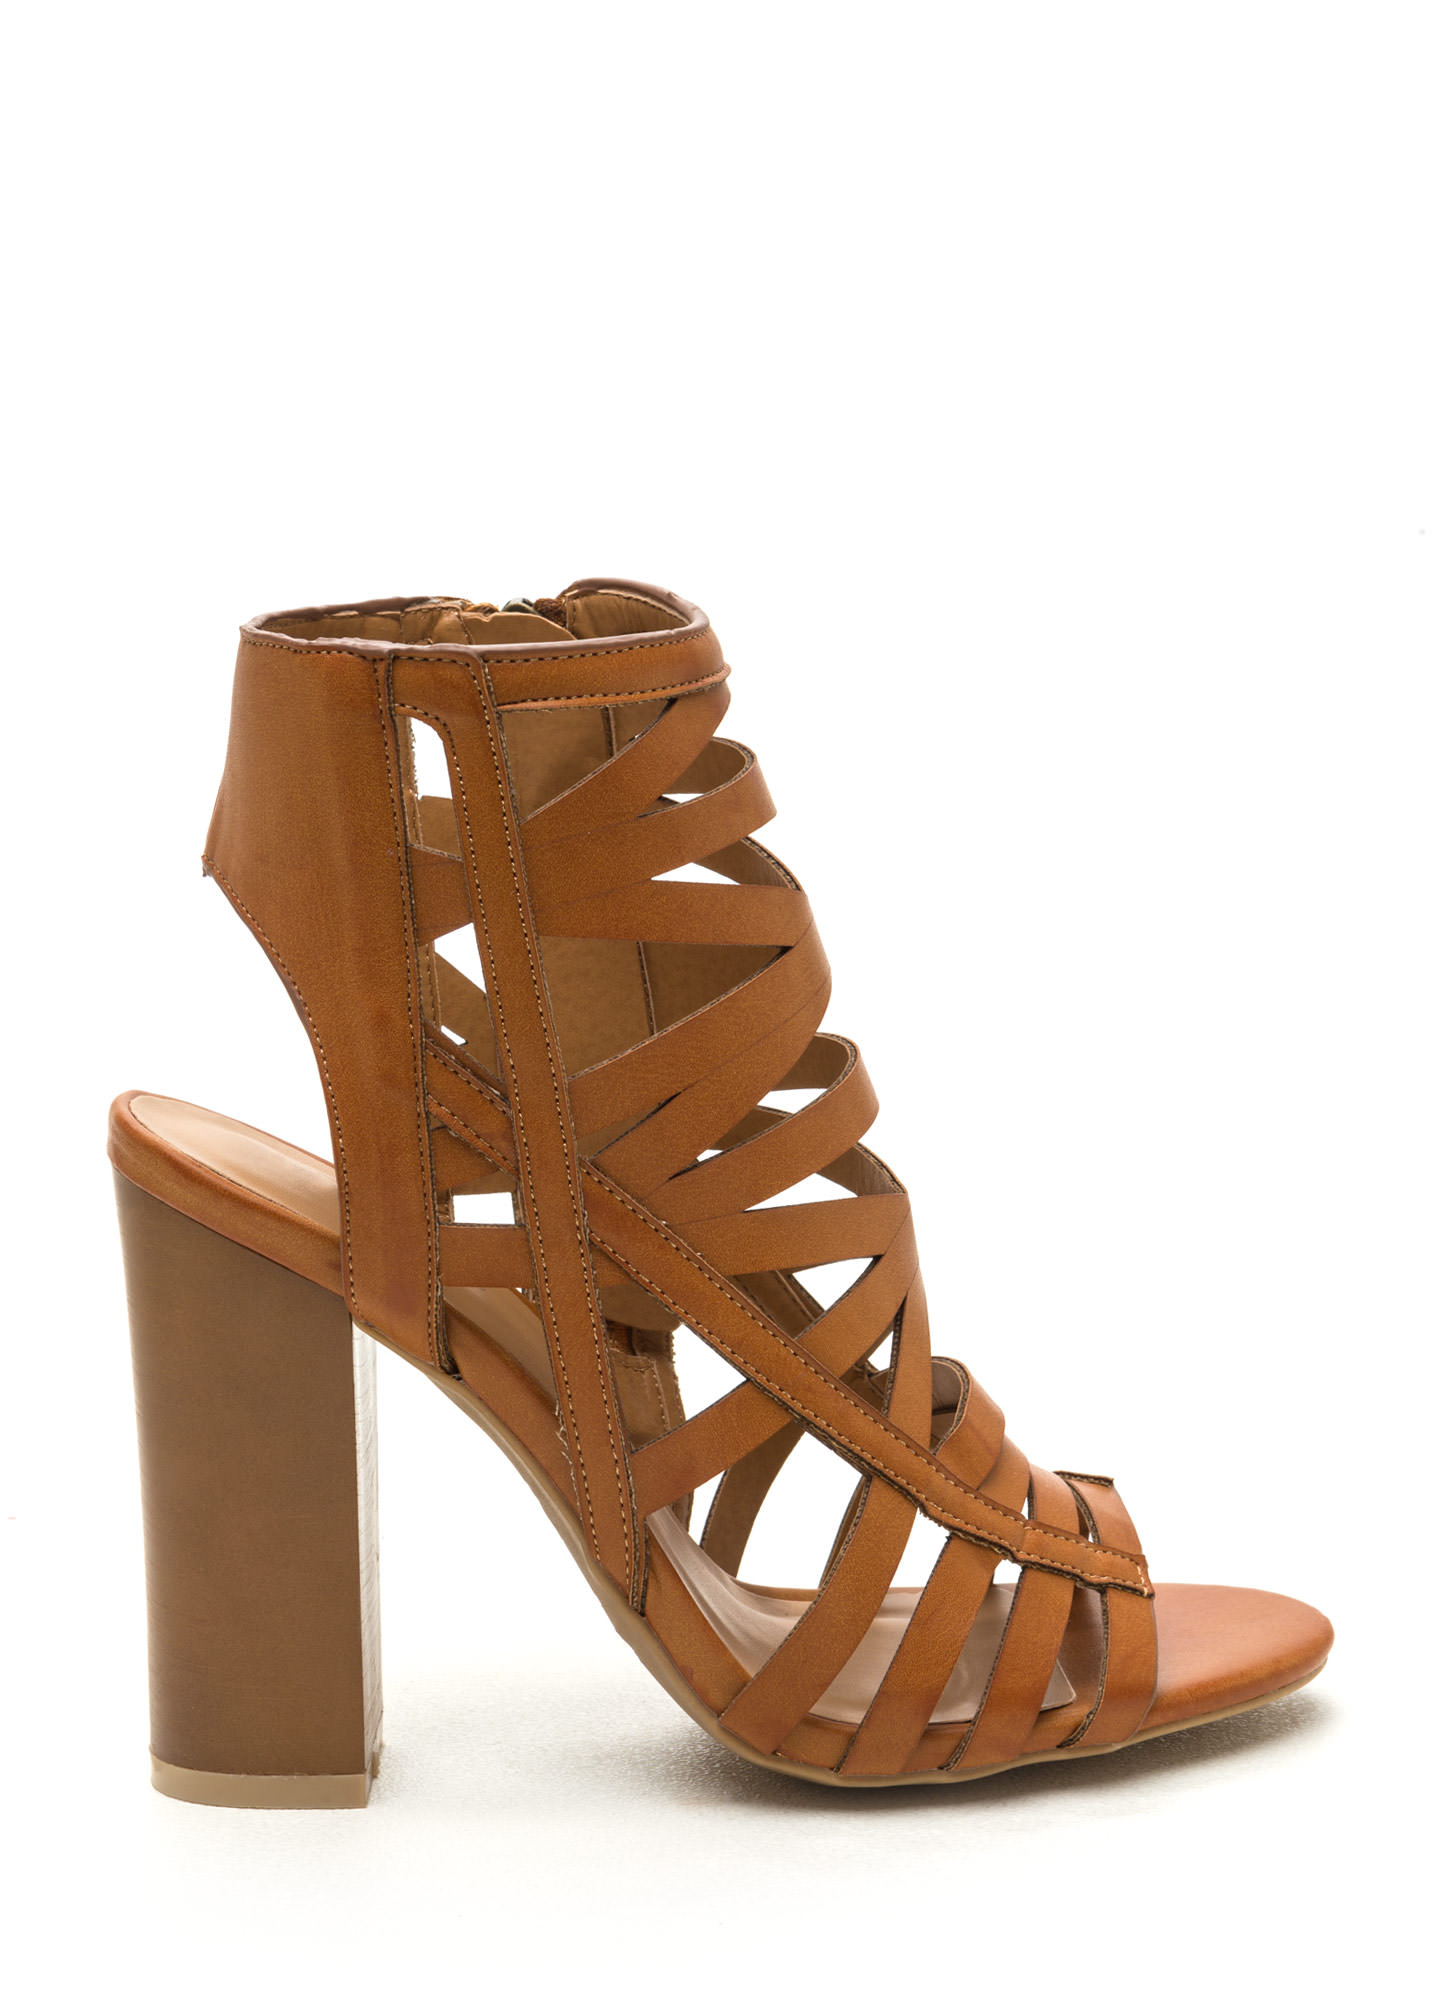 Cut-Out 'N Paste Faux Leather Heels TAN